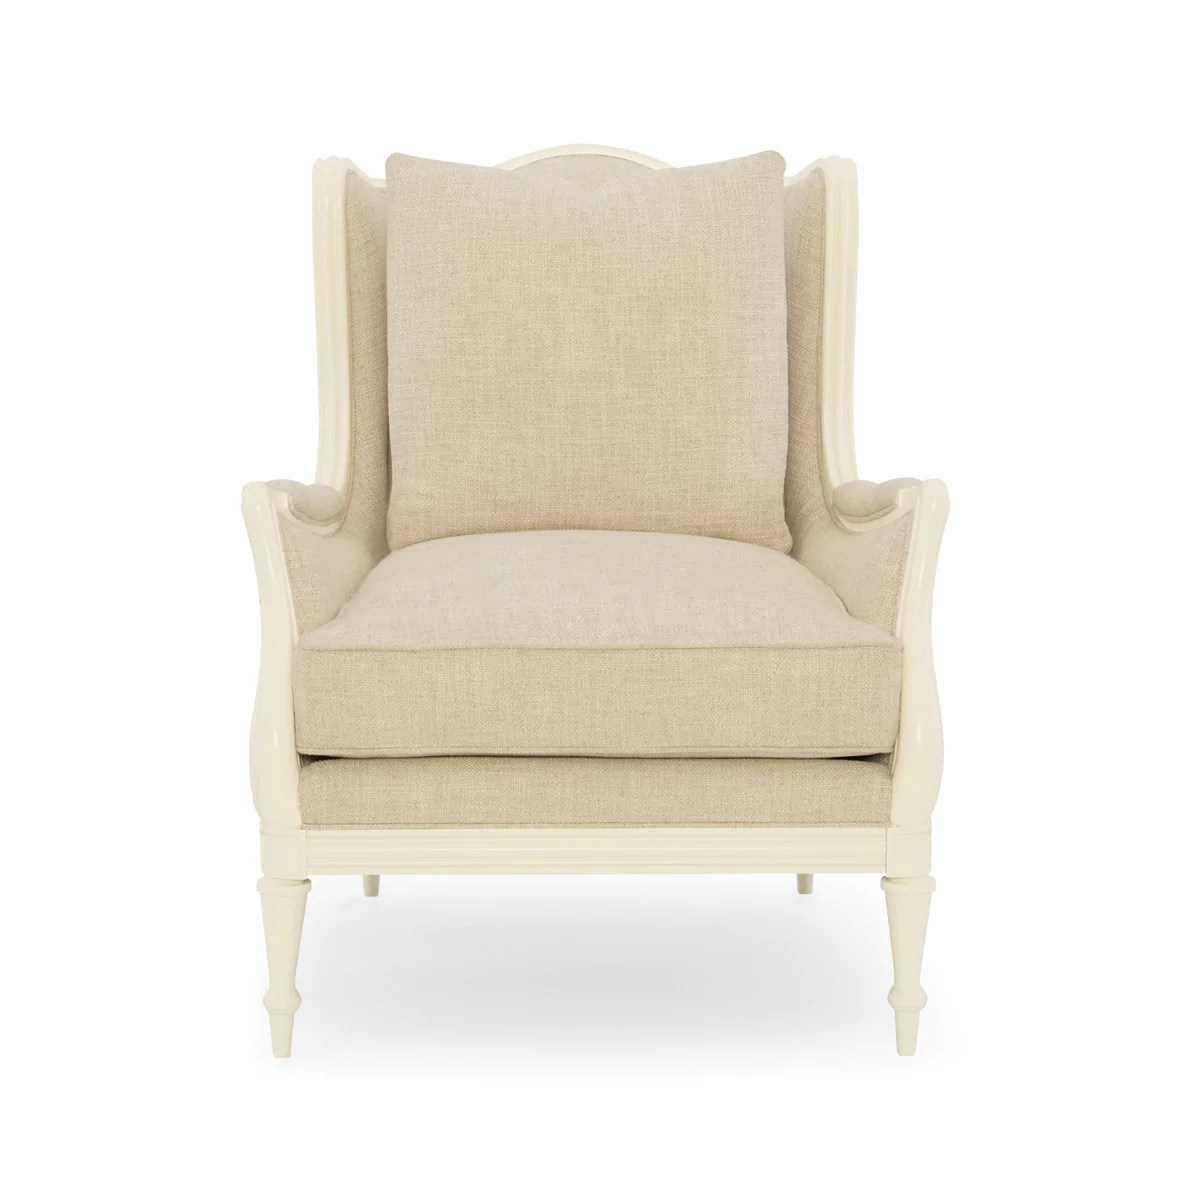 Cane Outdoor Furniture Brisbane Longview Cane Occasional Chair Max Sparrow